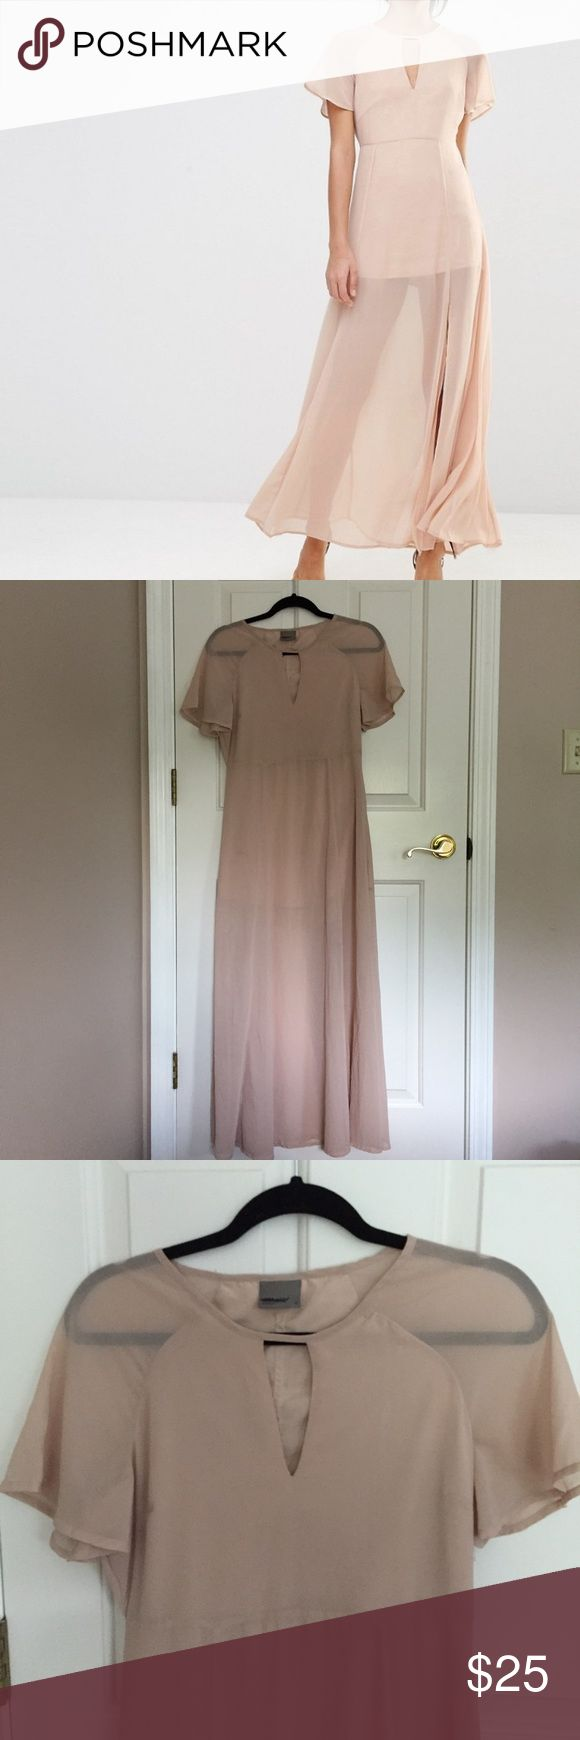 Vero moda ASOS maxi dress Short sleeve blush maxi dress from vero moda.  Sold online at ASOS but currently sold out. Relaxed fit. NWOT ASOS Dresses Maxi